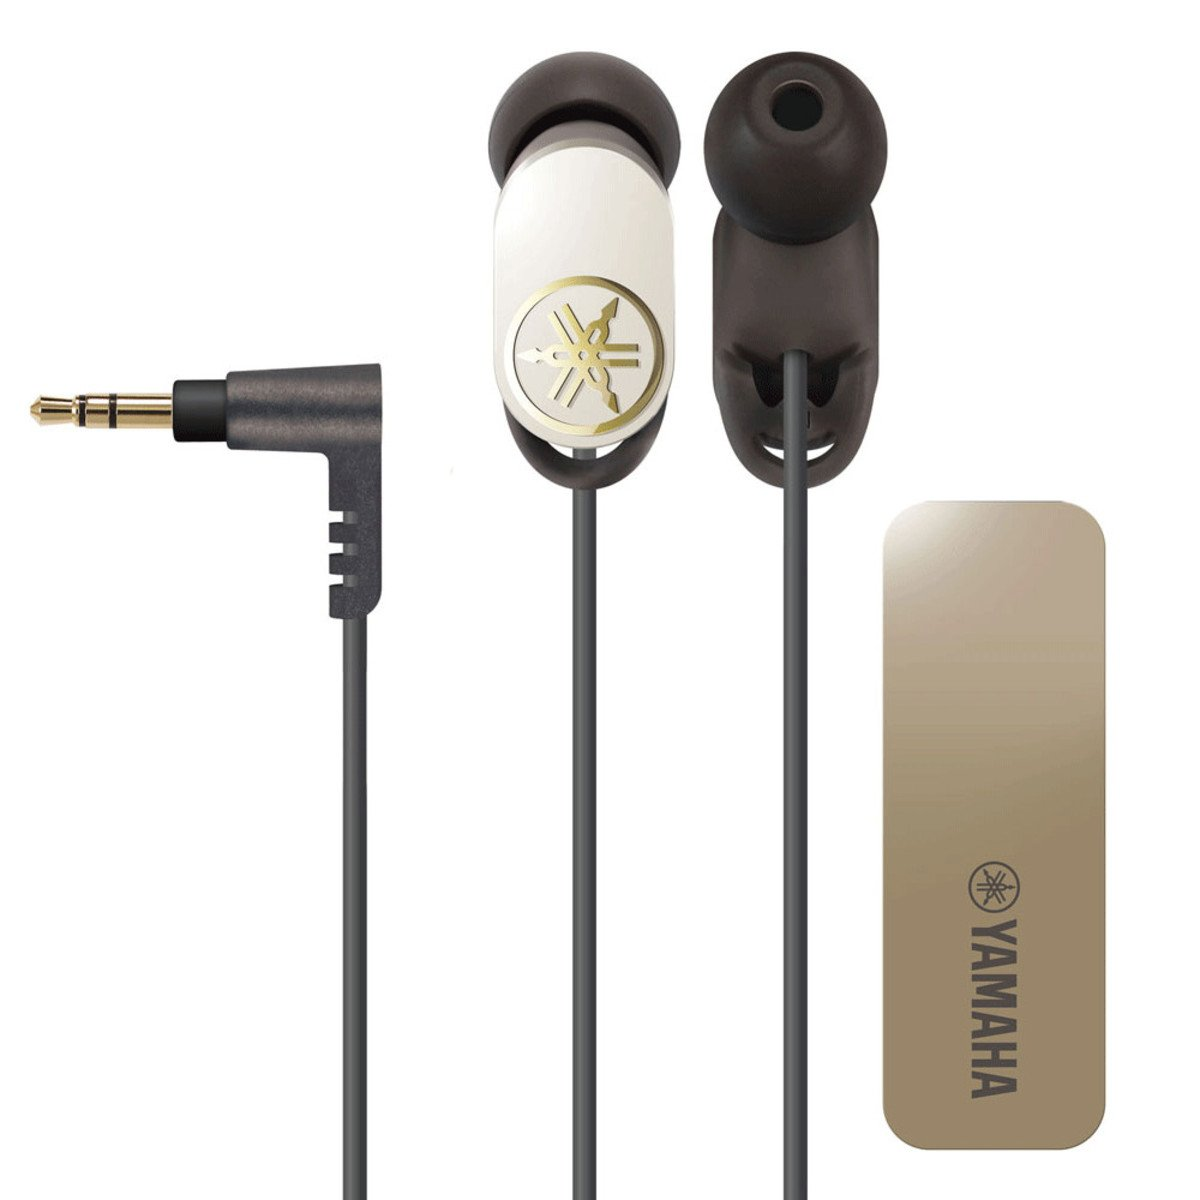 EPH-W22 Headphone Review